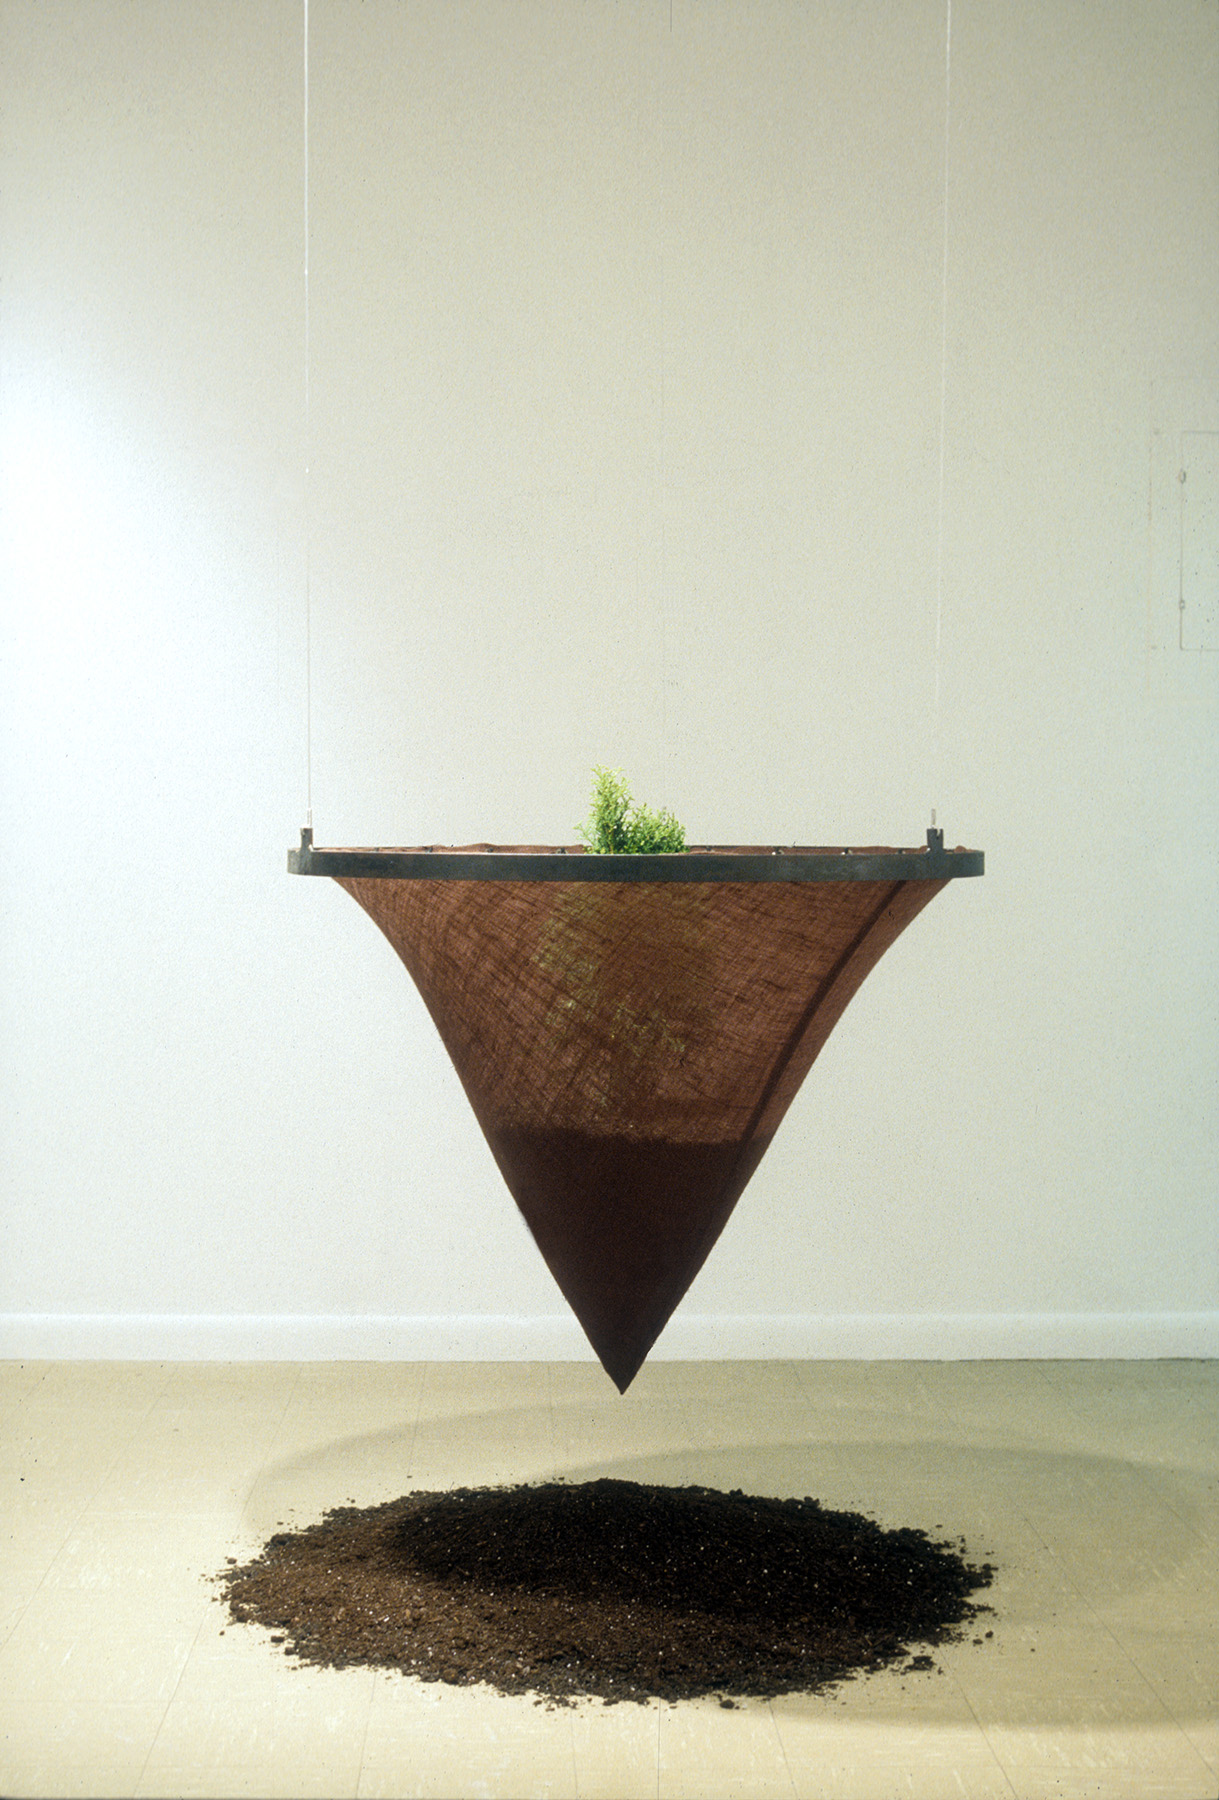 Separation  / 2004 / Steel, burlap, soil, evergreen tree / 4' x 3' x 3'